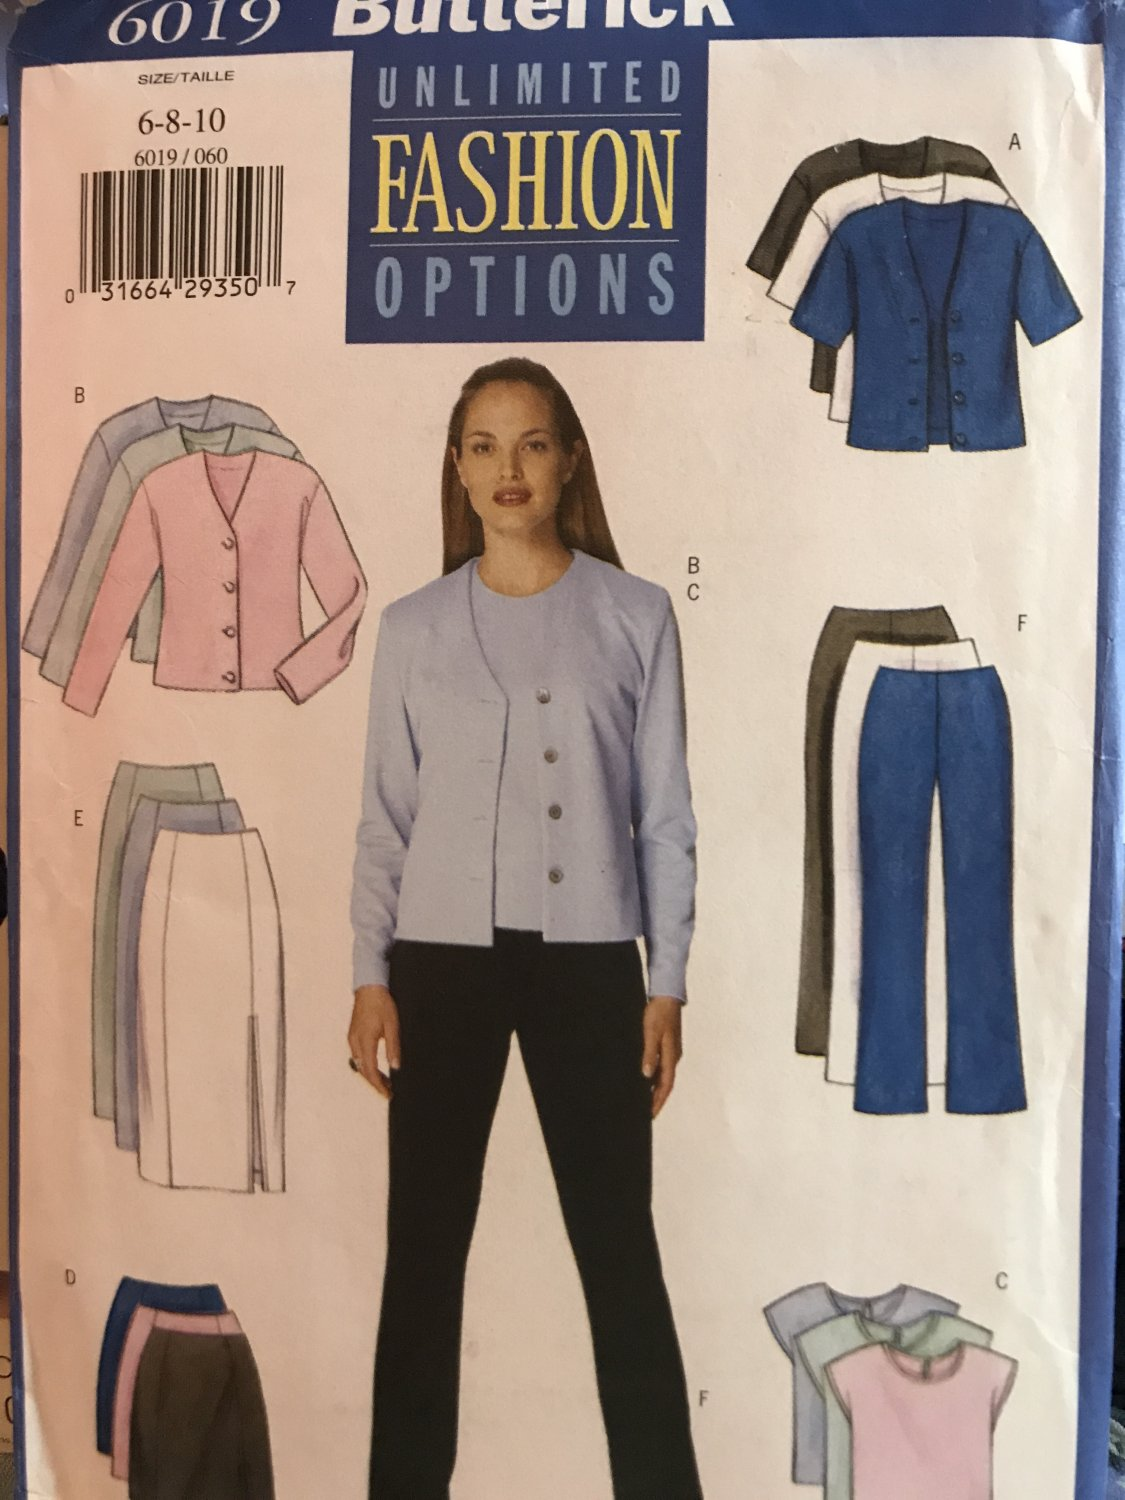 Butterick 6019 Unlimited Options MISSES' Skirt, pants, top, jacket Sewing Pattern Size 6 8 10